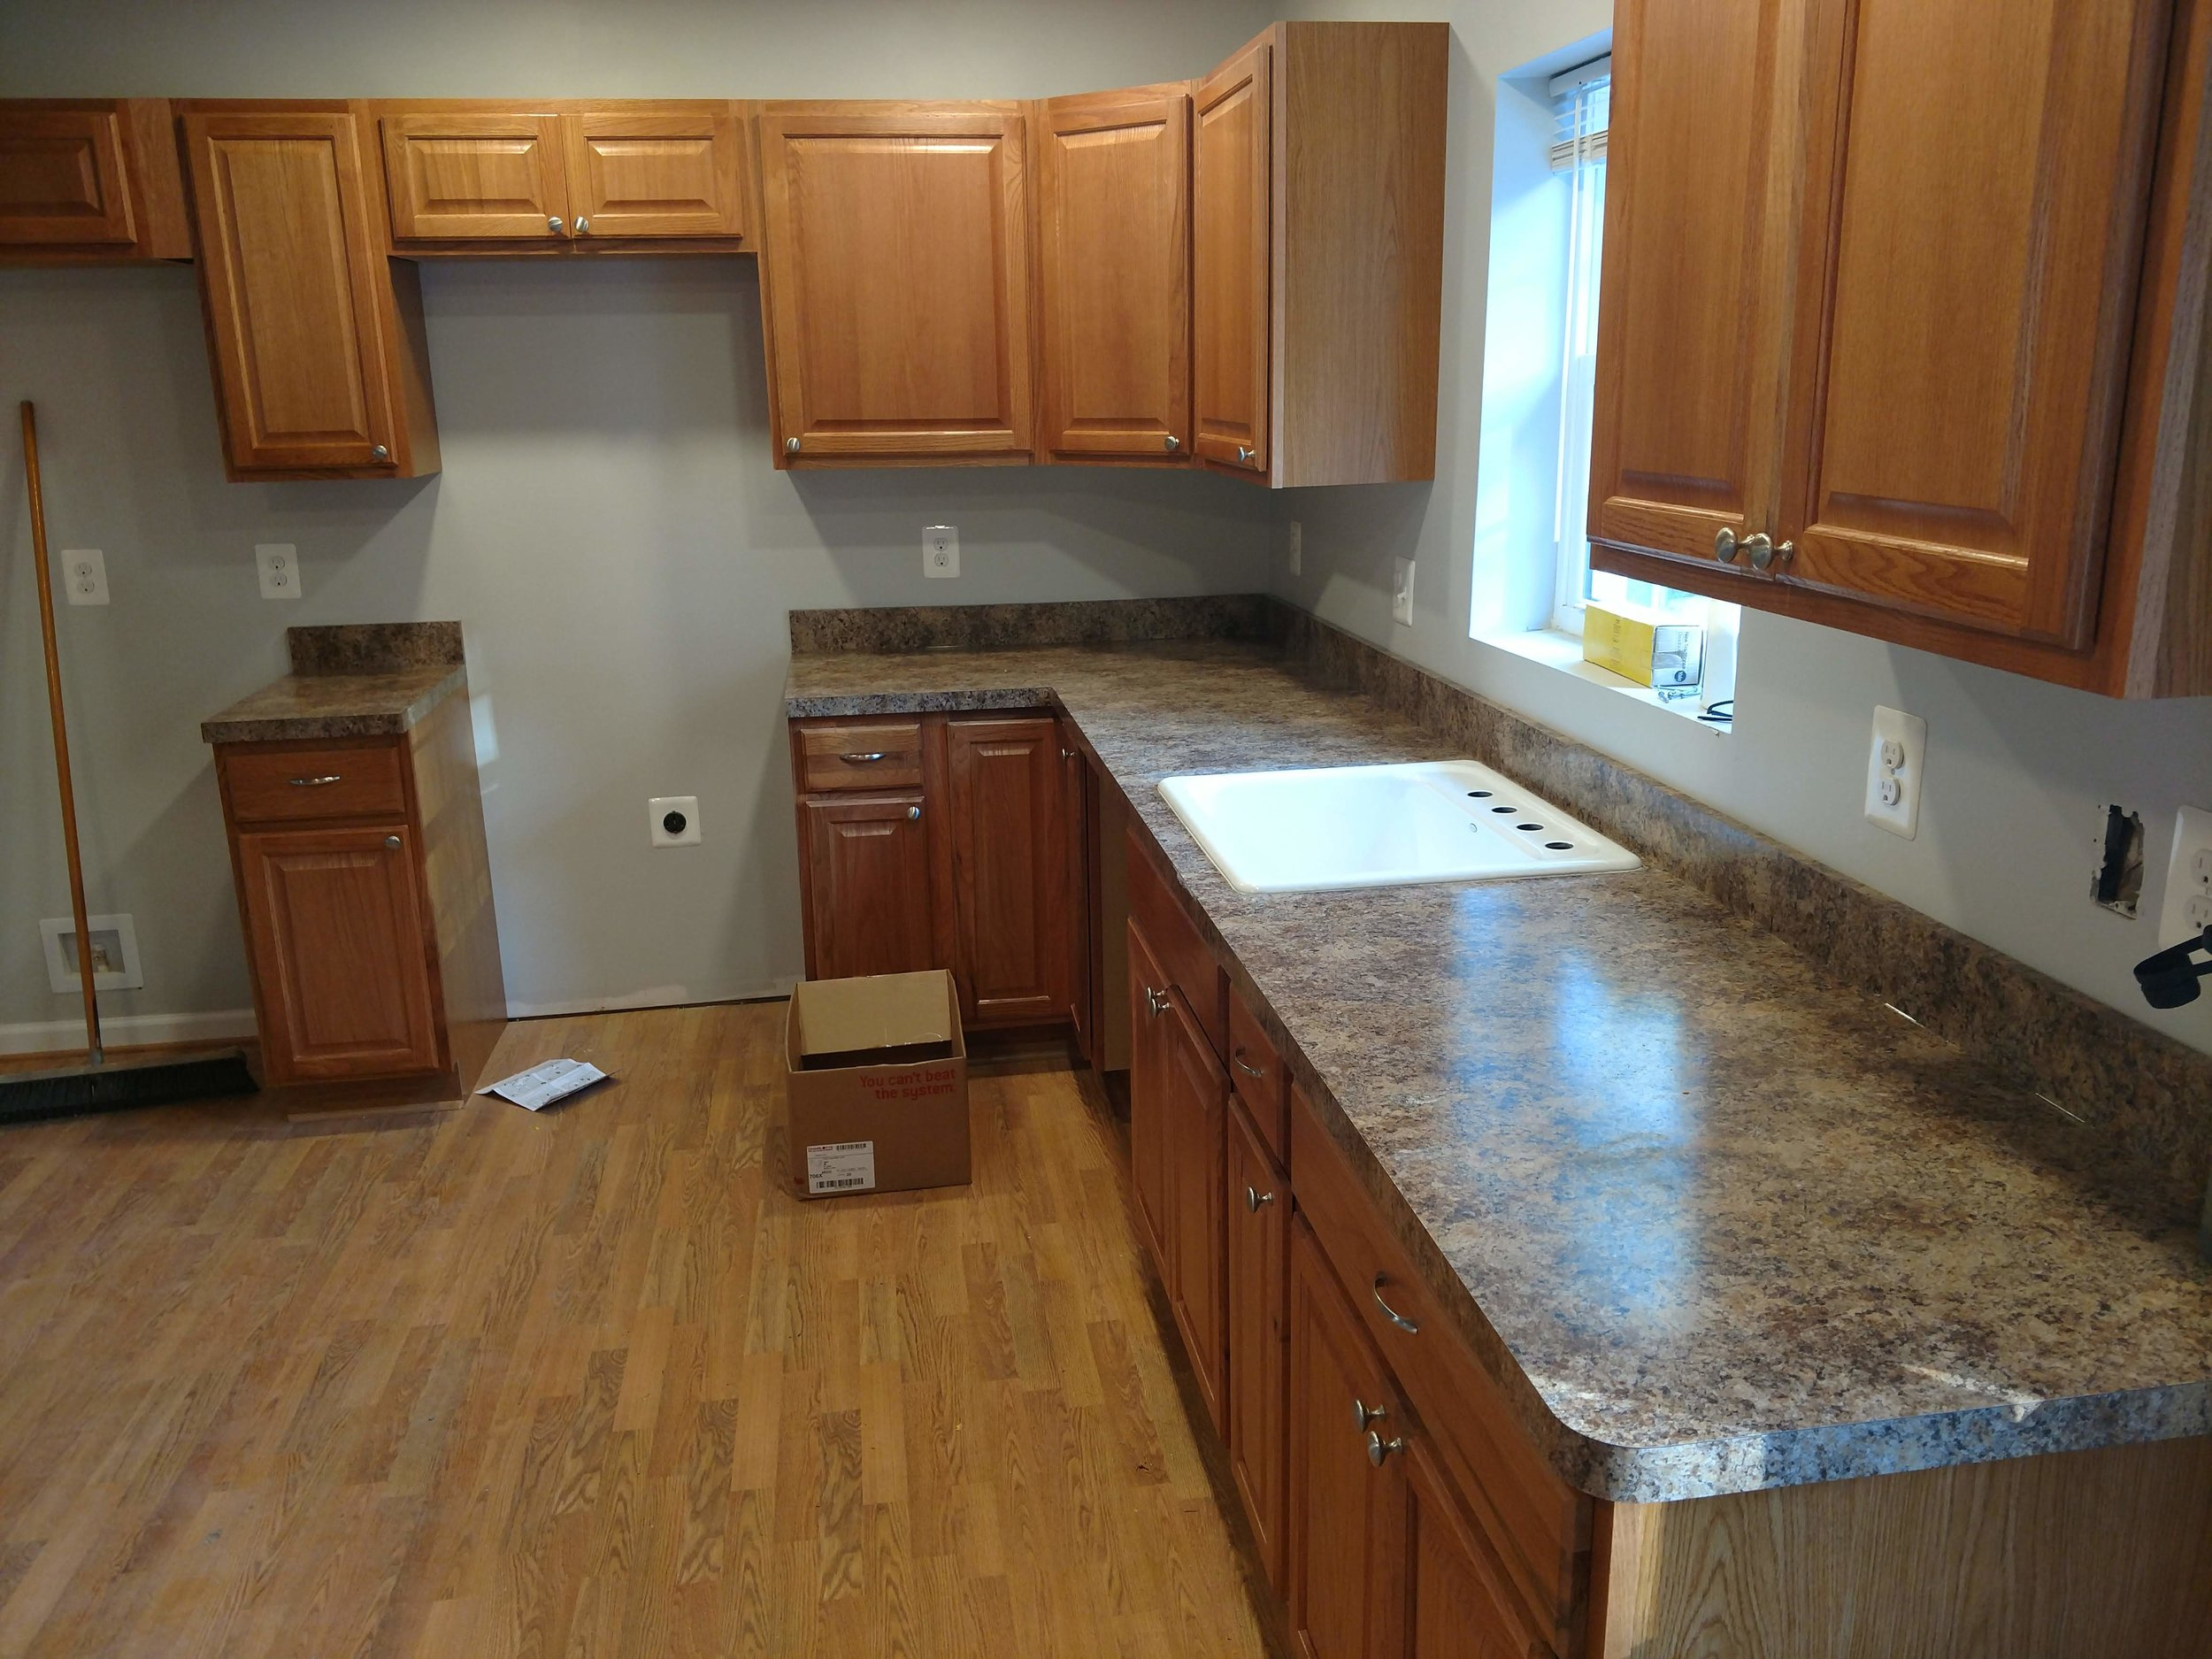 Kitchen cabinets and countertop.jpg